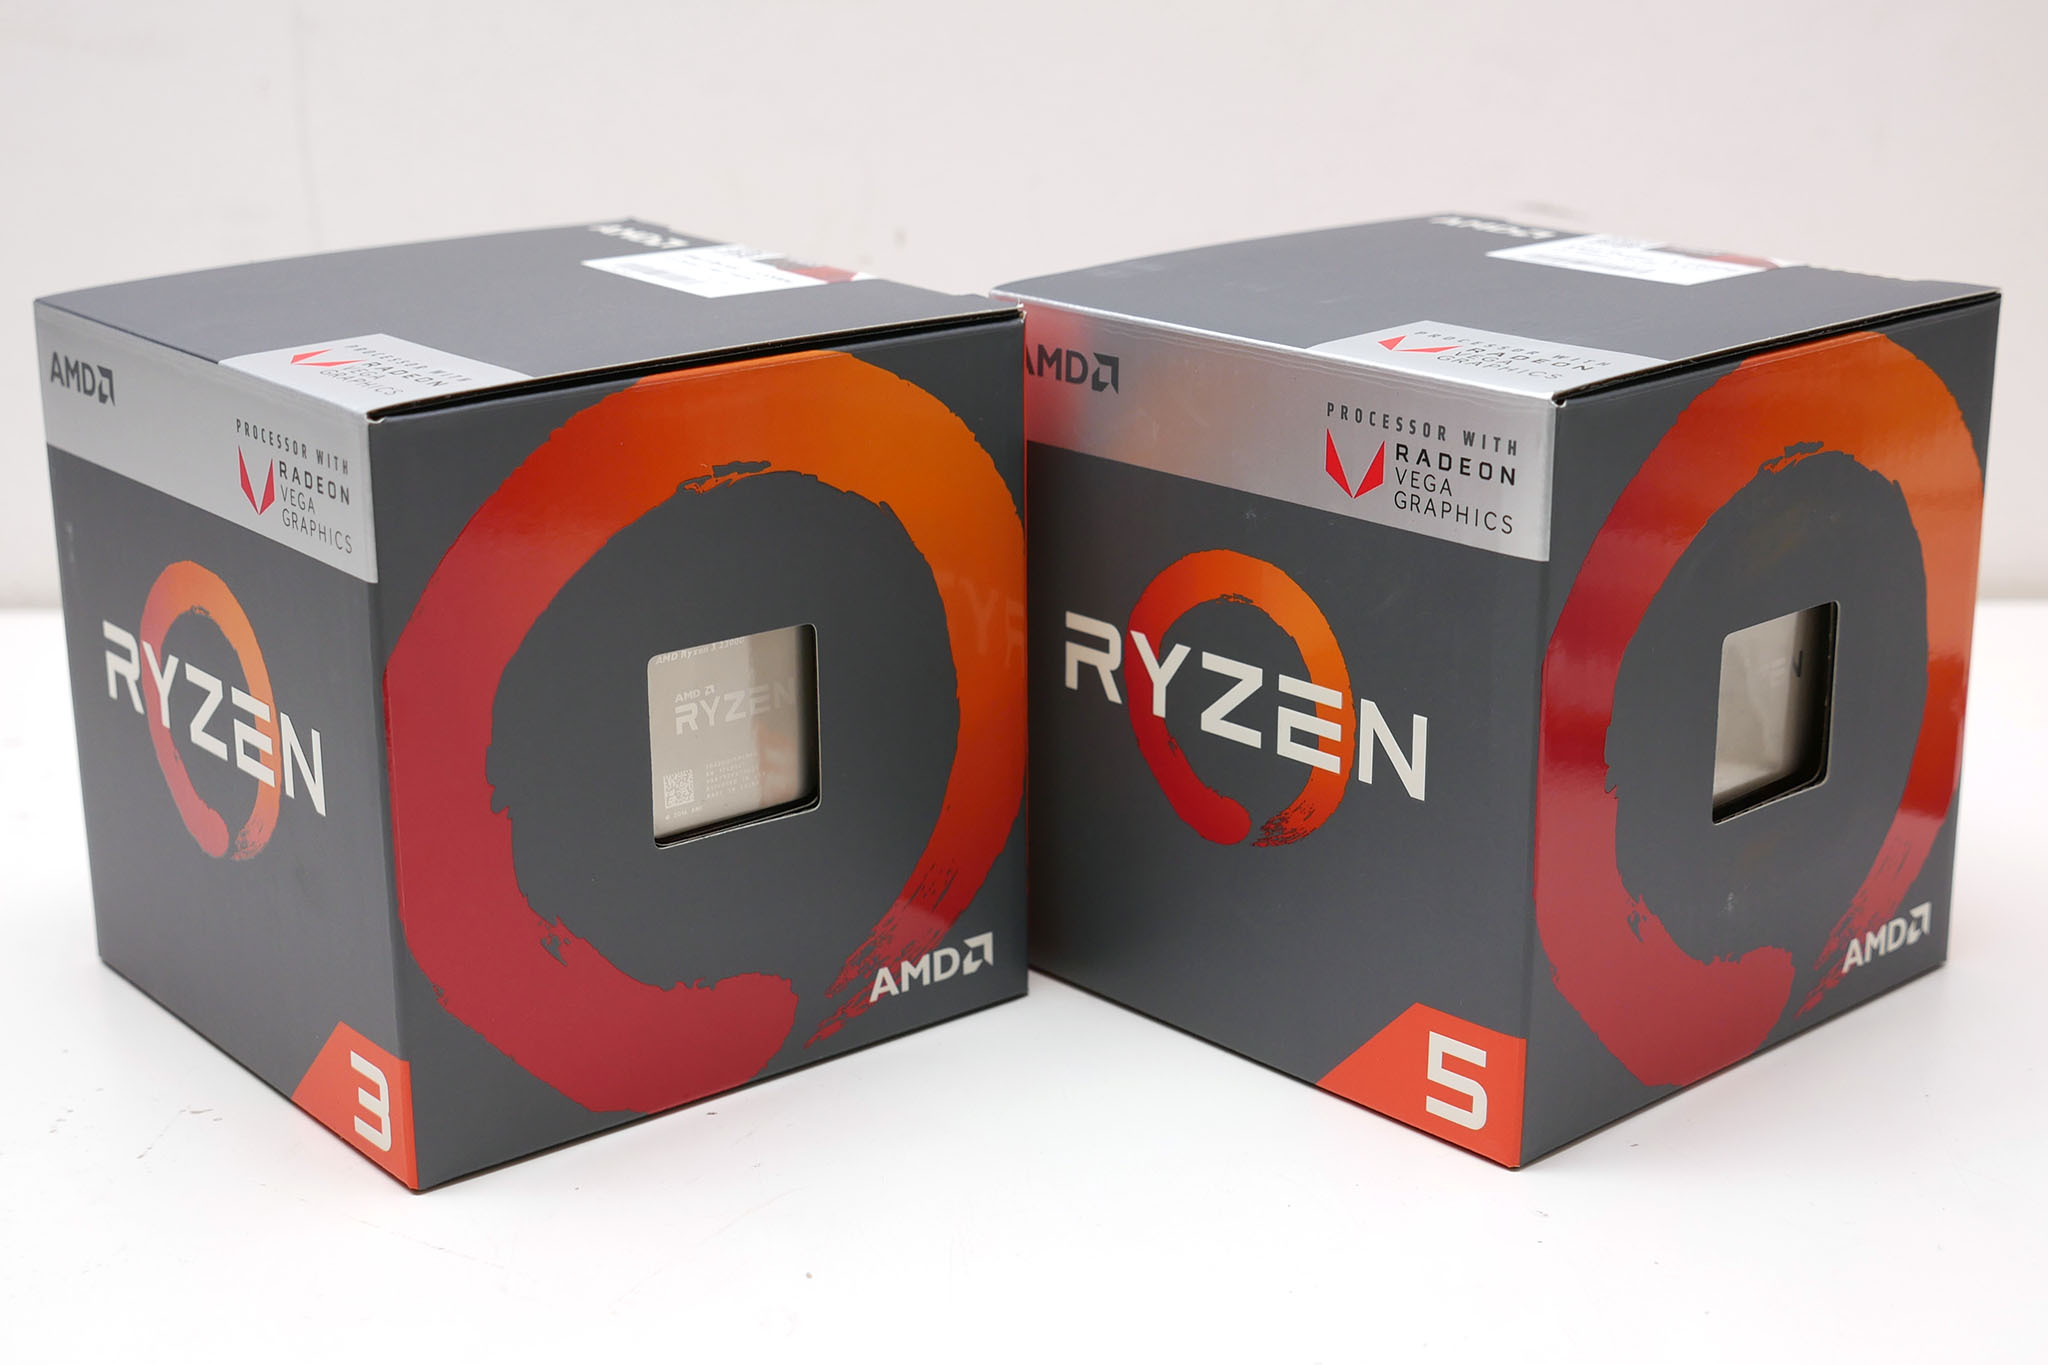 AMD Ryzen 5 2400G and Ryzen 3 2200G